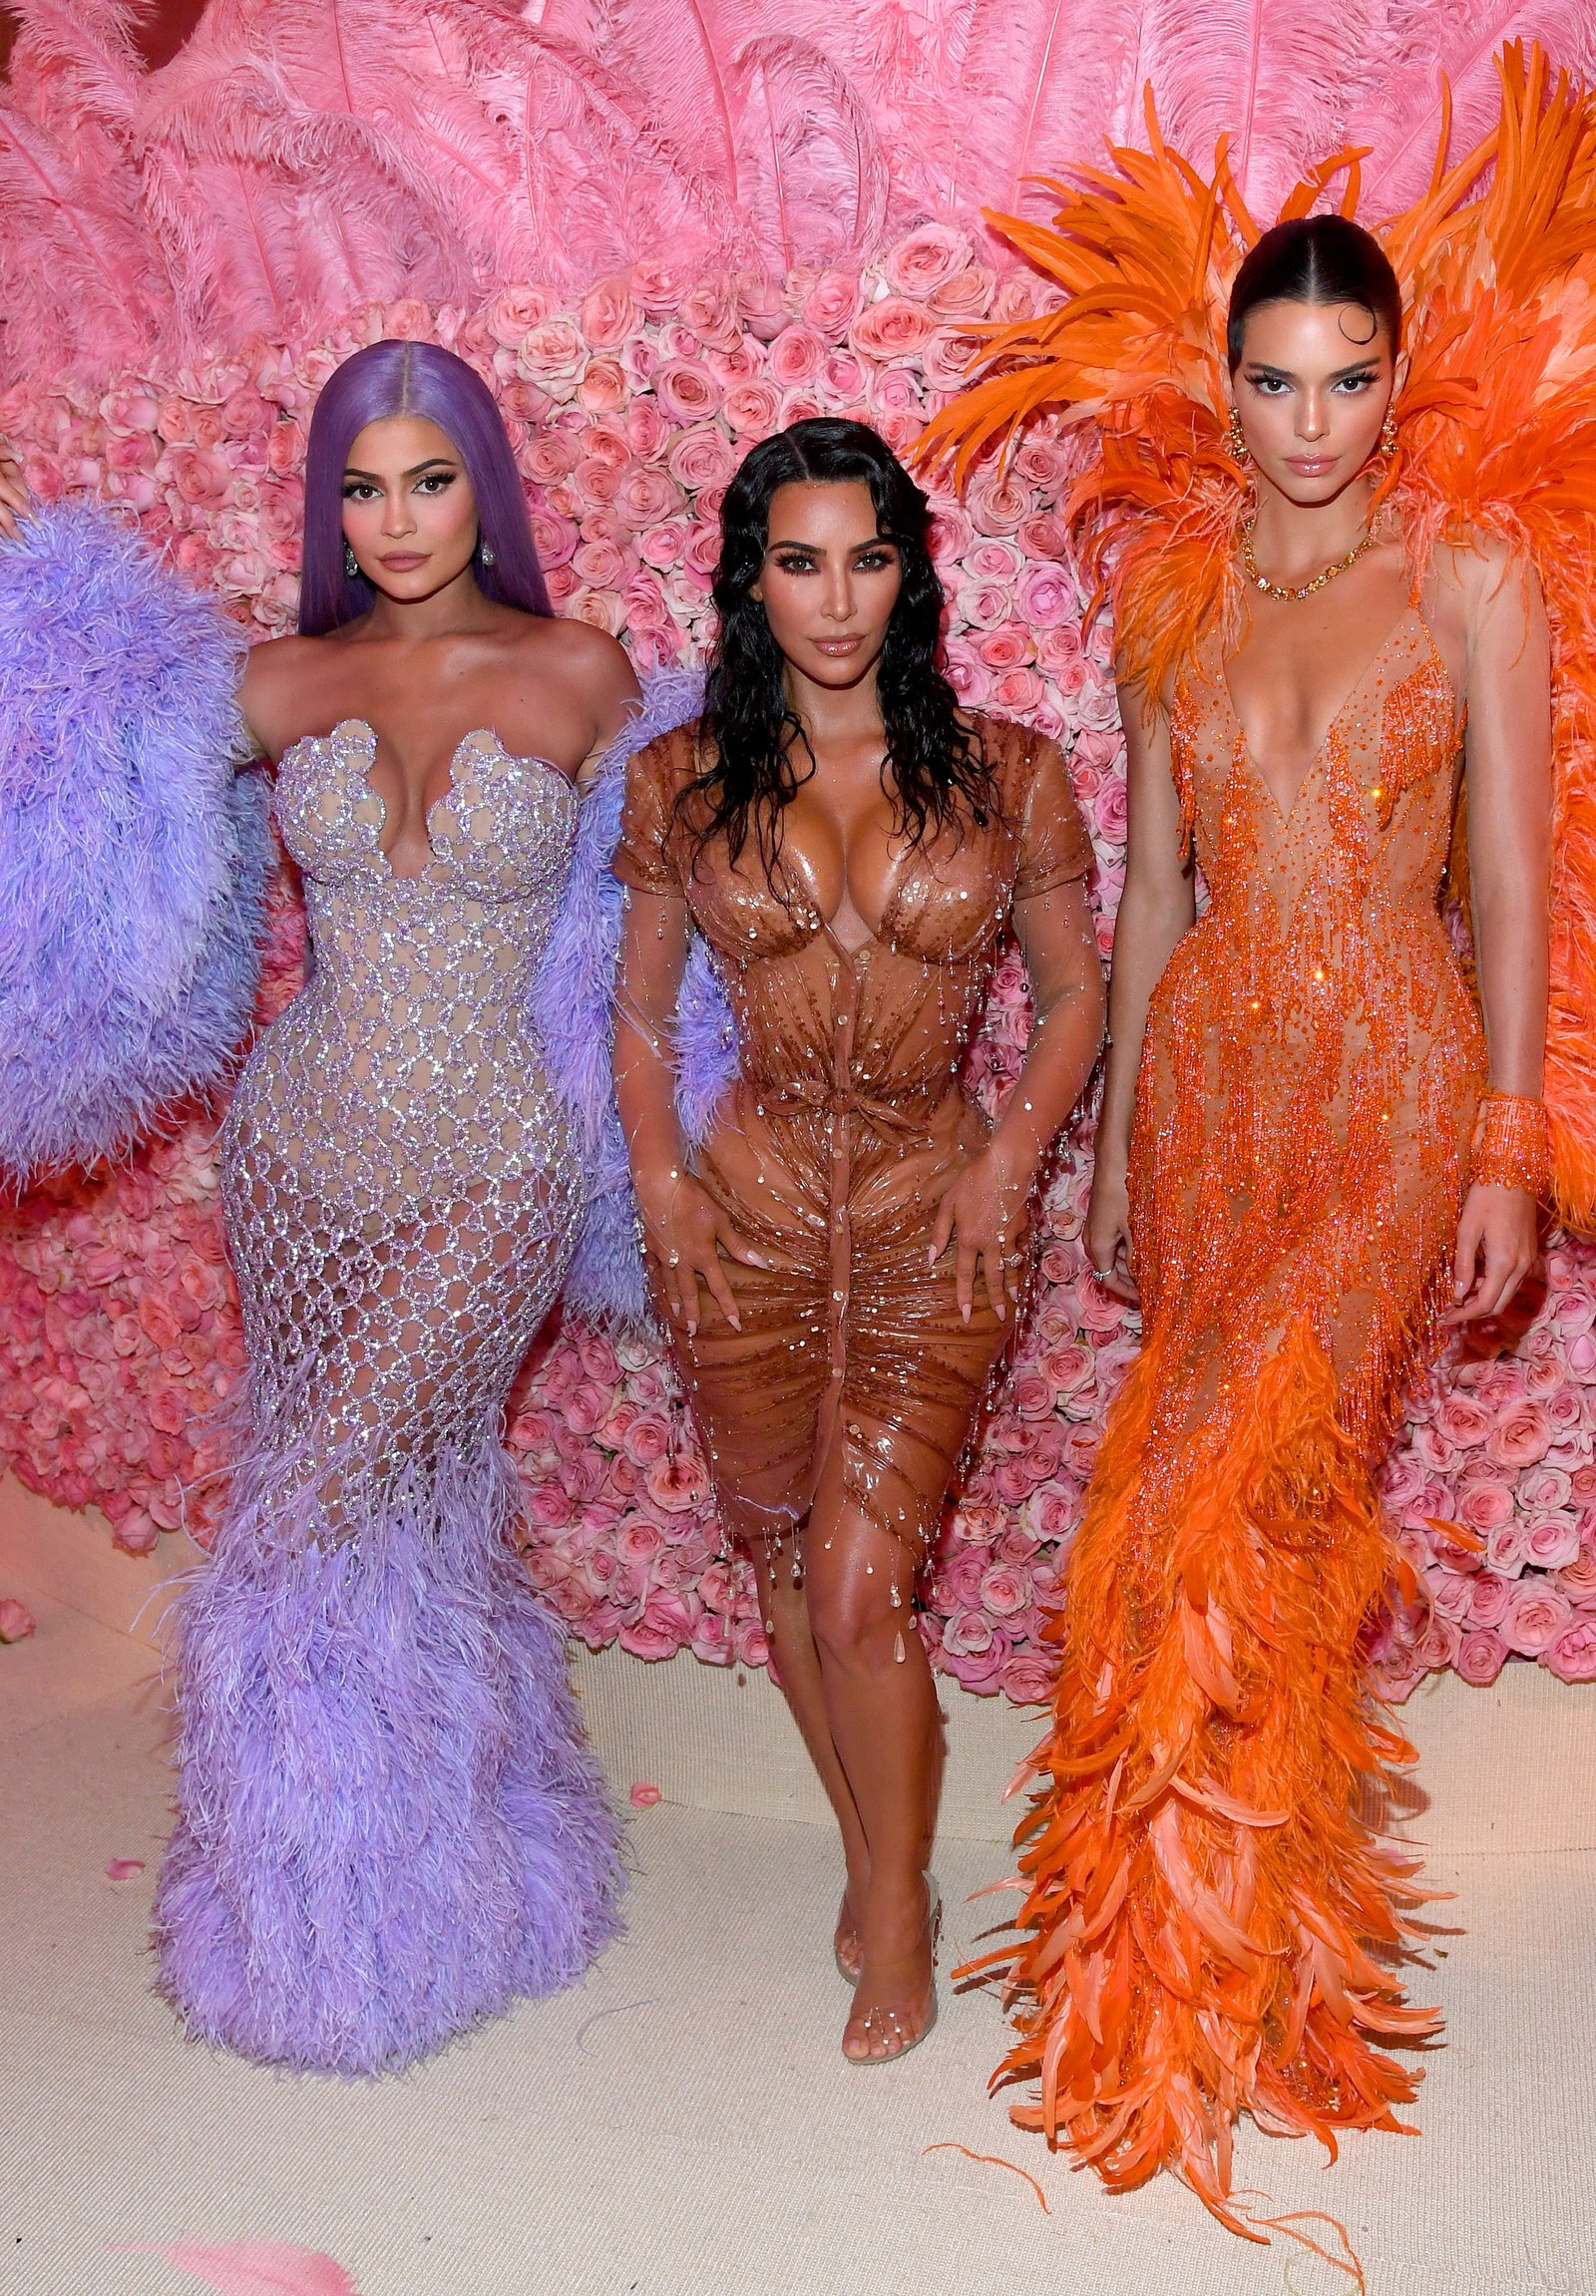 Kylie Jenner Kim Kardashian West and Kendall Jenner attend The 2019 Met Gala